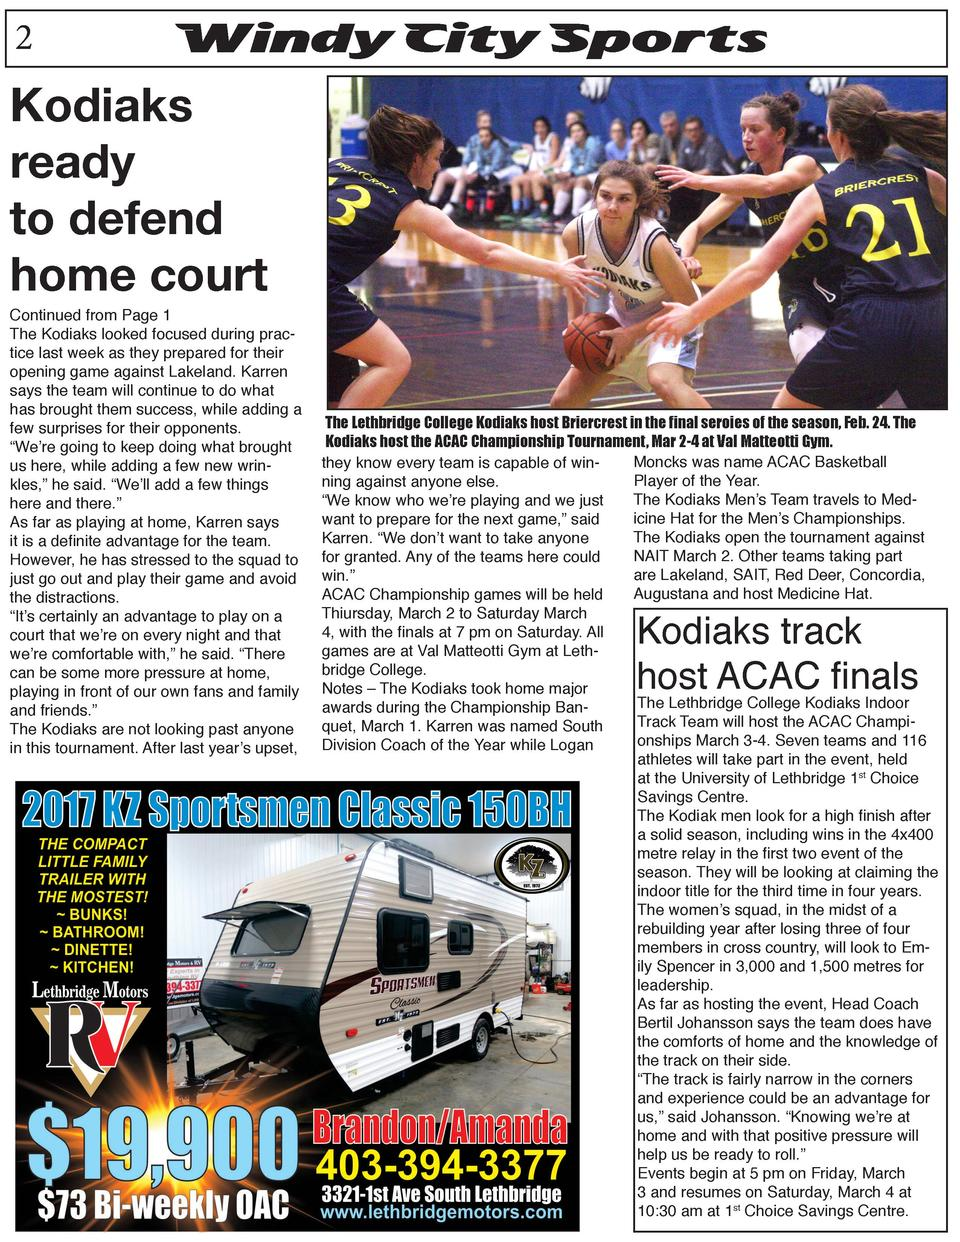 2  Windy City Sports  Kodiaks ready to defend home court  Continued from Page 1 The Kodiaks looked focused during practice...